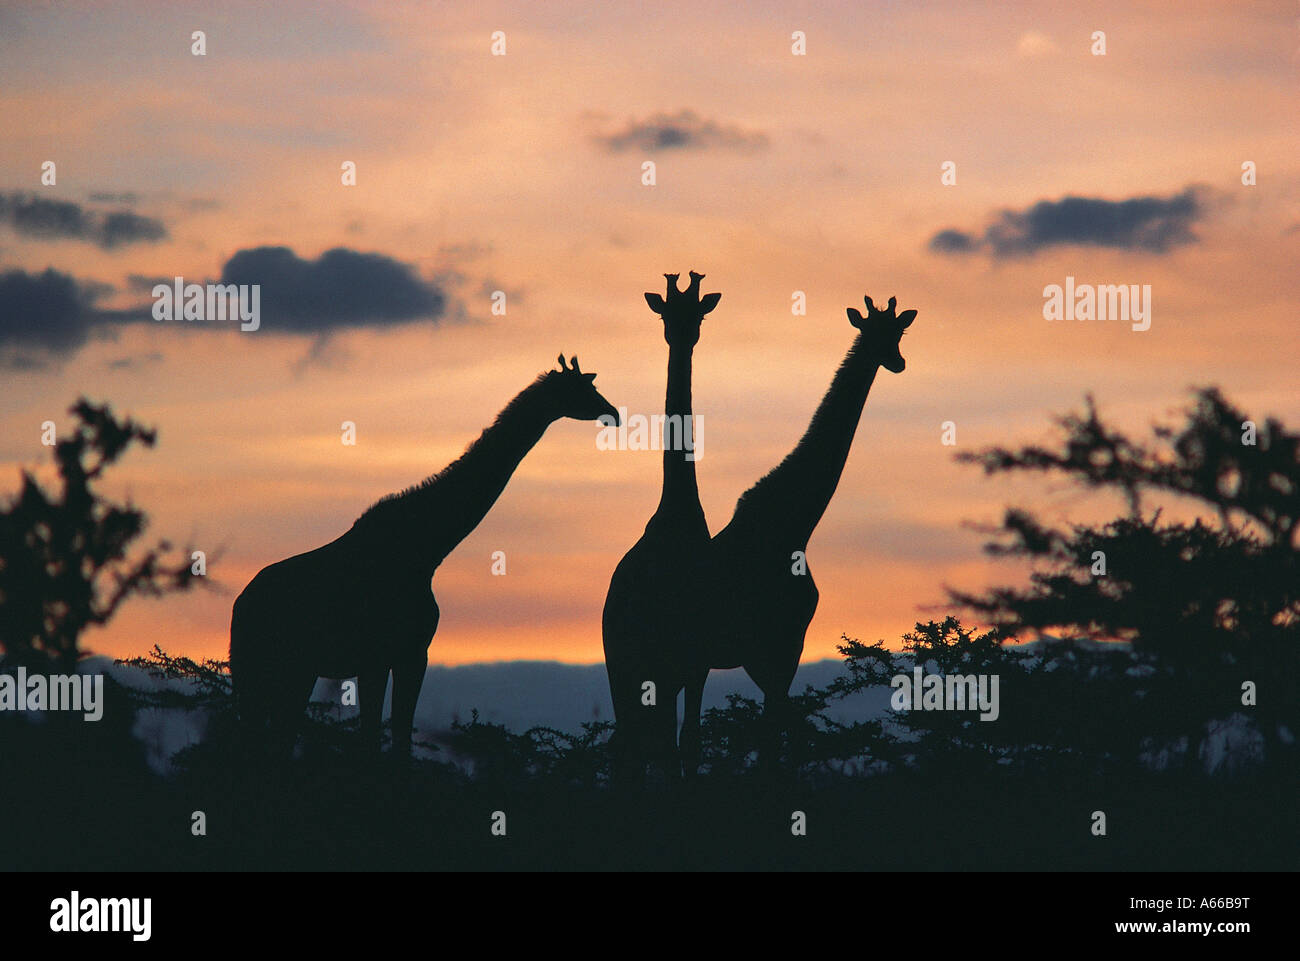 Masai Giraffe at sunset Masai Mara National Reserve Kenya - Stock Image